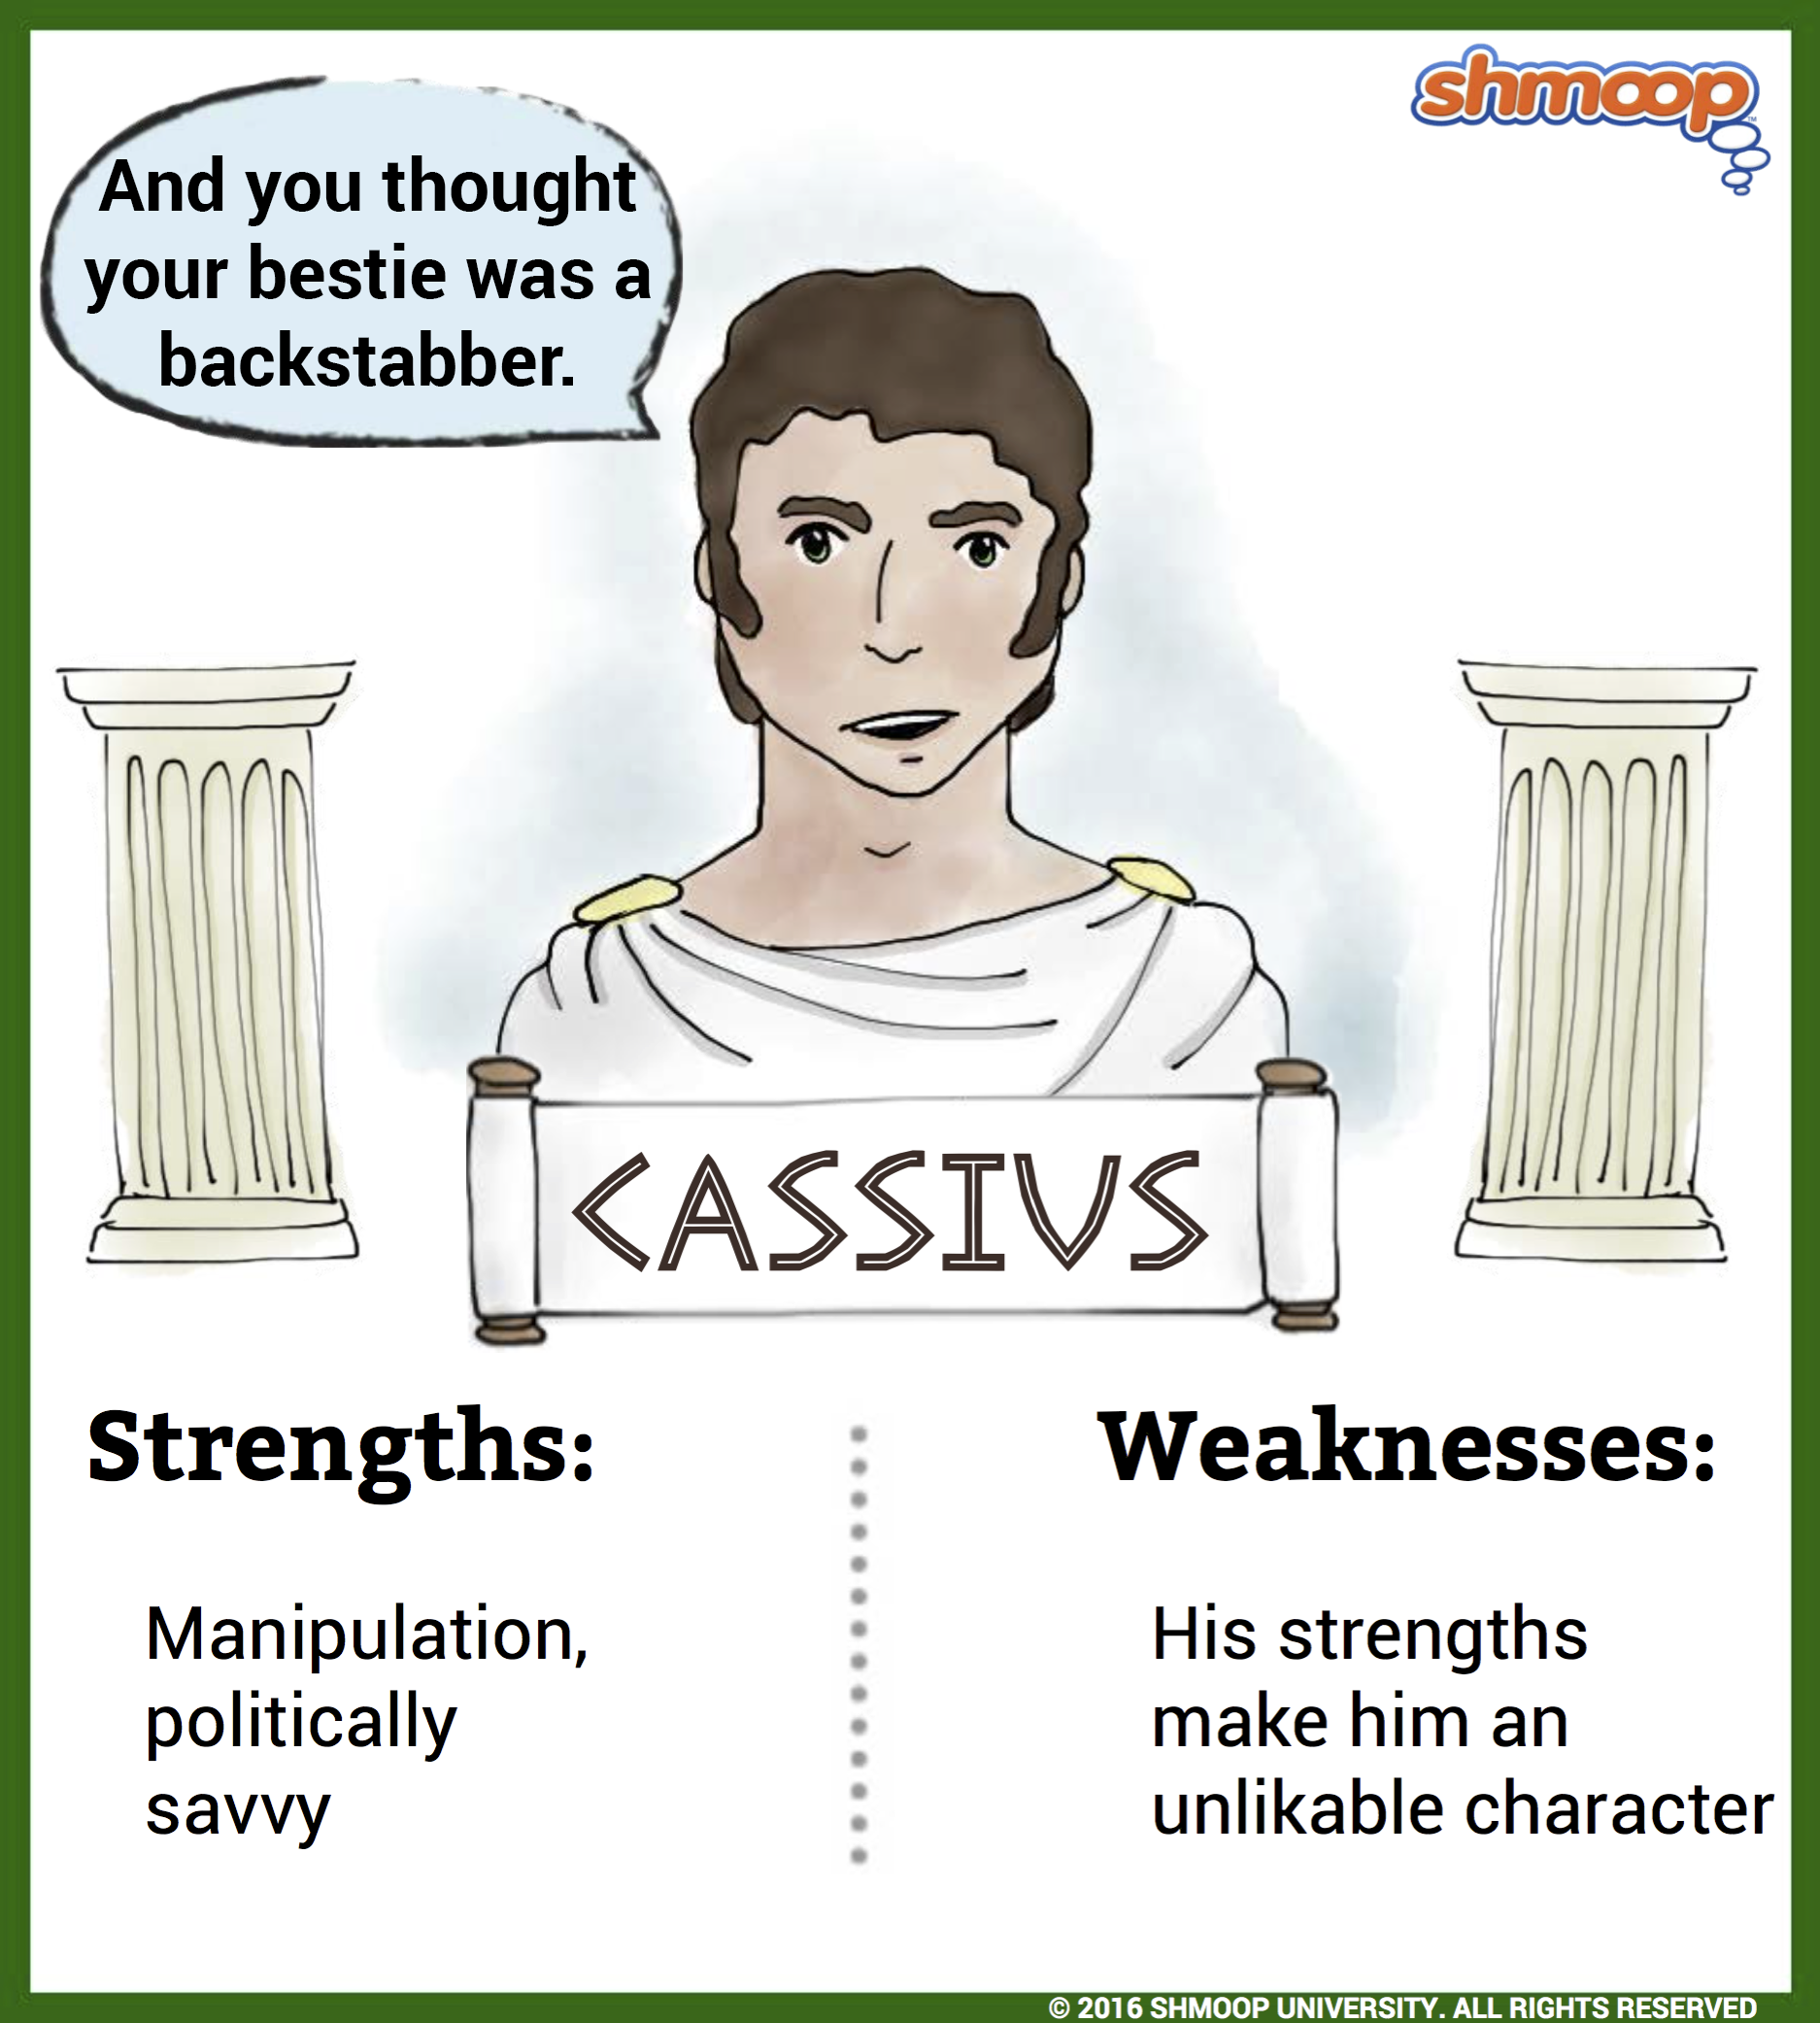 a character analysis of marcus brutus in william shakespeares julius caesar Julius caersar - analysis of brutus: in the play the tragedy of julius caesar by william shakespeare, the character marcus brutus fits the definition of the tragic hero.